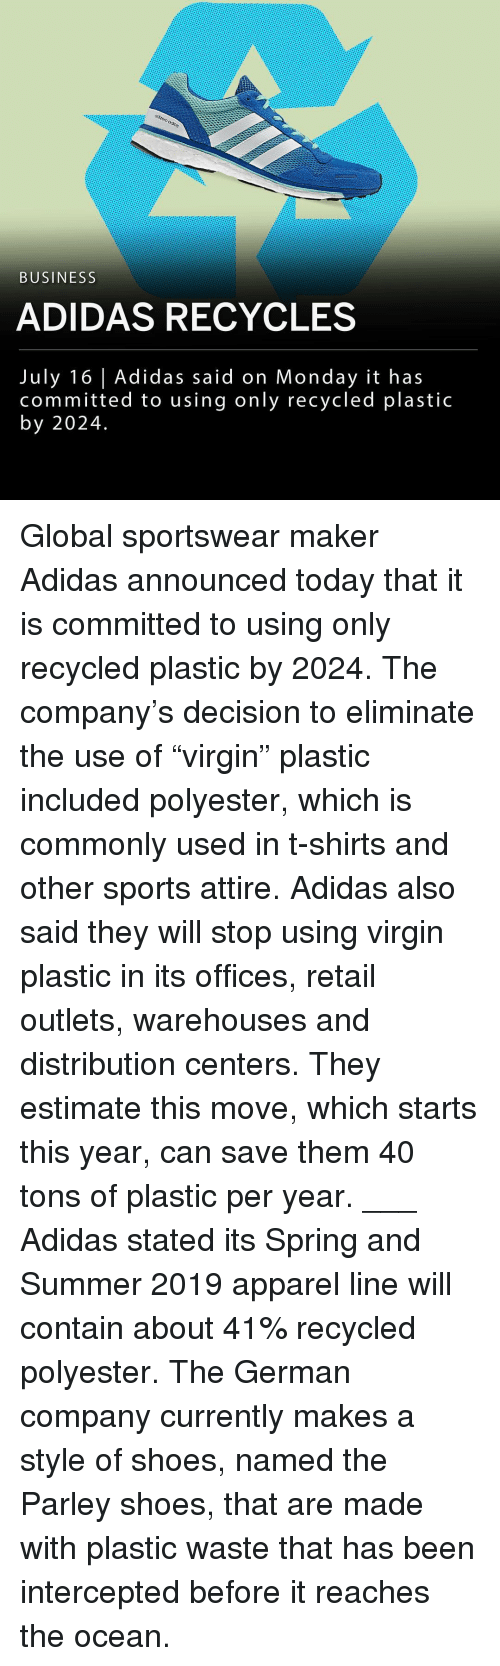 "Intercepted: BUSINESS  ADIDAS RECYCLES  July 16 Adidas said on Monday it has  committed to using only recycled plastic  by 2024. Global sportswear maker Adidas announced today that it is committed to using only recycled plastic by 2024. The company's decision to eliminate the use of ""virgin"" plastic included polyester, which is commonly used in t-shirts and other sports attire. Adidas also said they will stop using virgin plastic in its offices, retail outlets, warehouses and distribution centers. They estimate this move, which starts this year, can save them 40 tons of plastic per year. ___ Adidas stated its Spring and Summer 2019 apparel line will contain about 41% recycled polyester. The German company currently makes a style of shoes, named the Parley shoes, that are made with plastic waste that has been intercepted before it reaches the ocean."